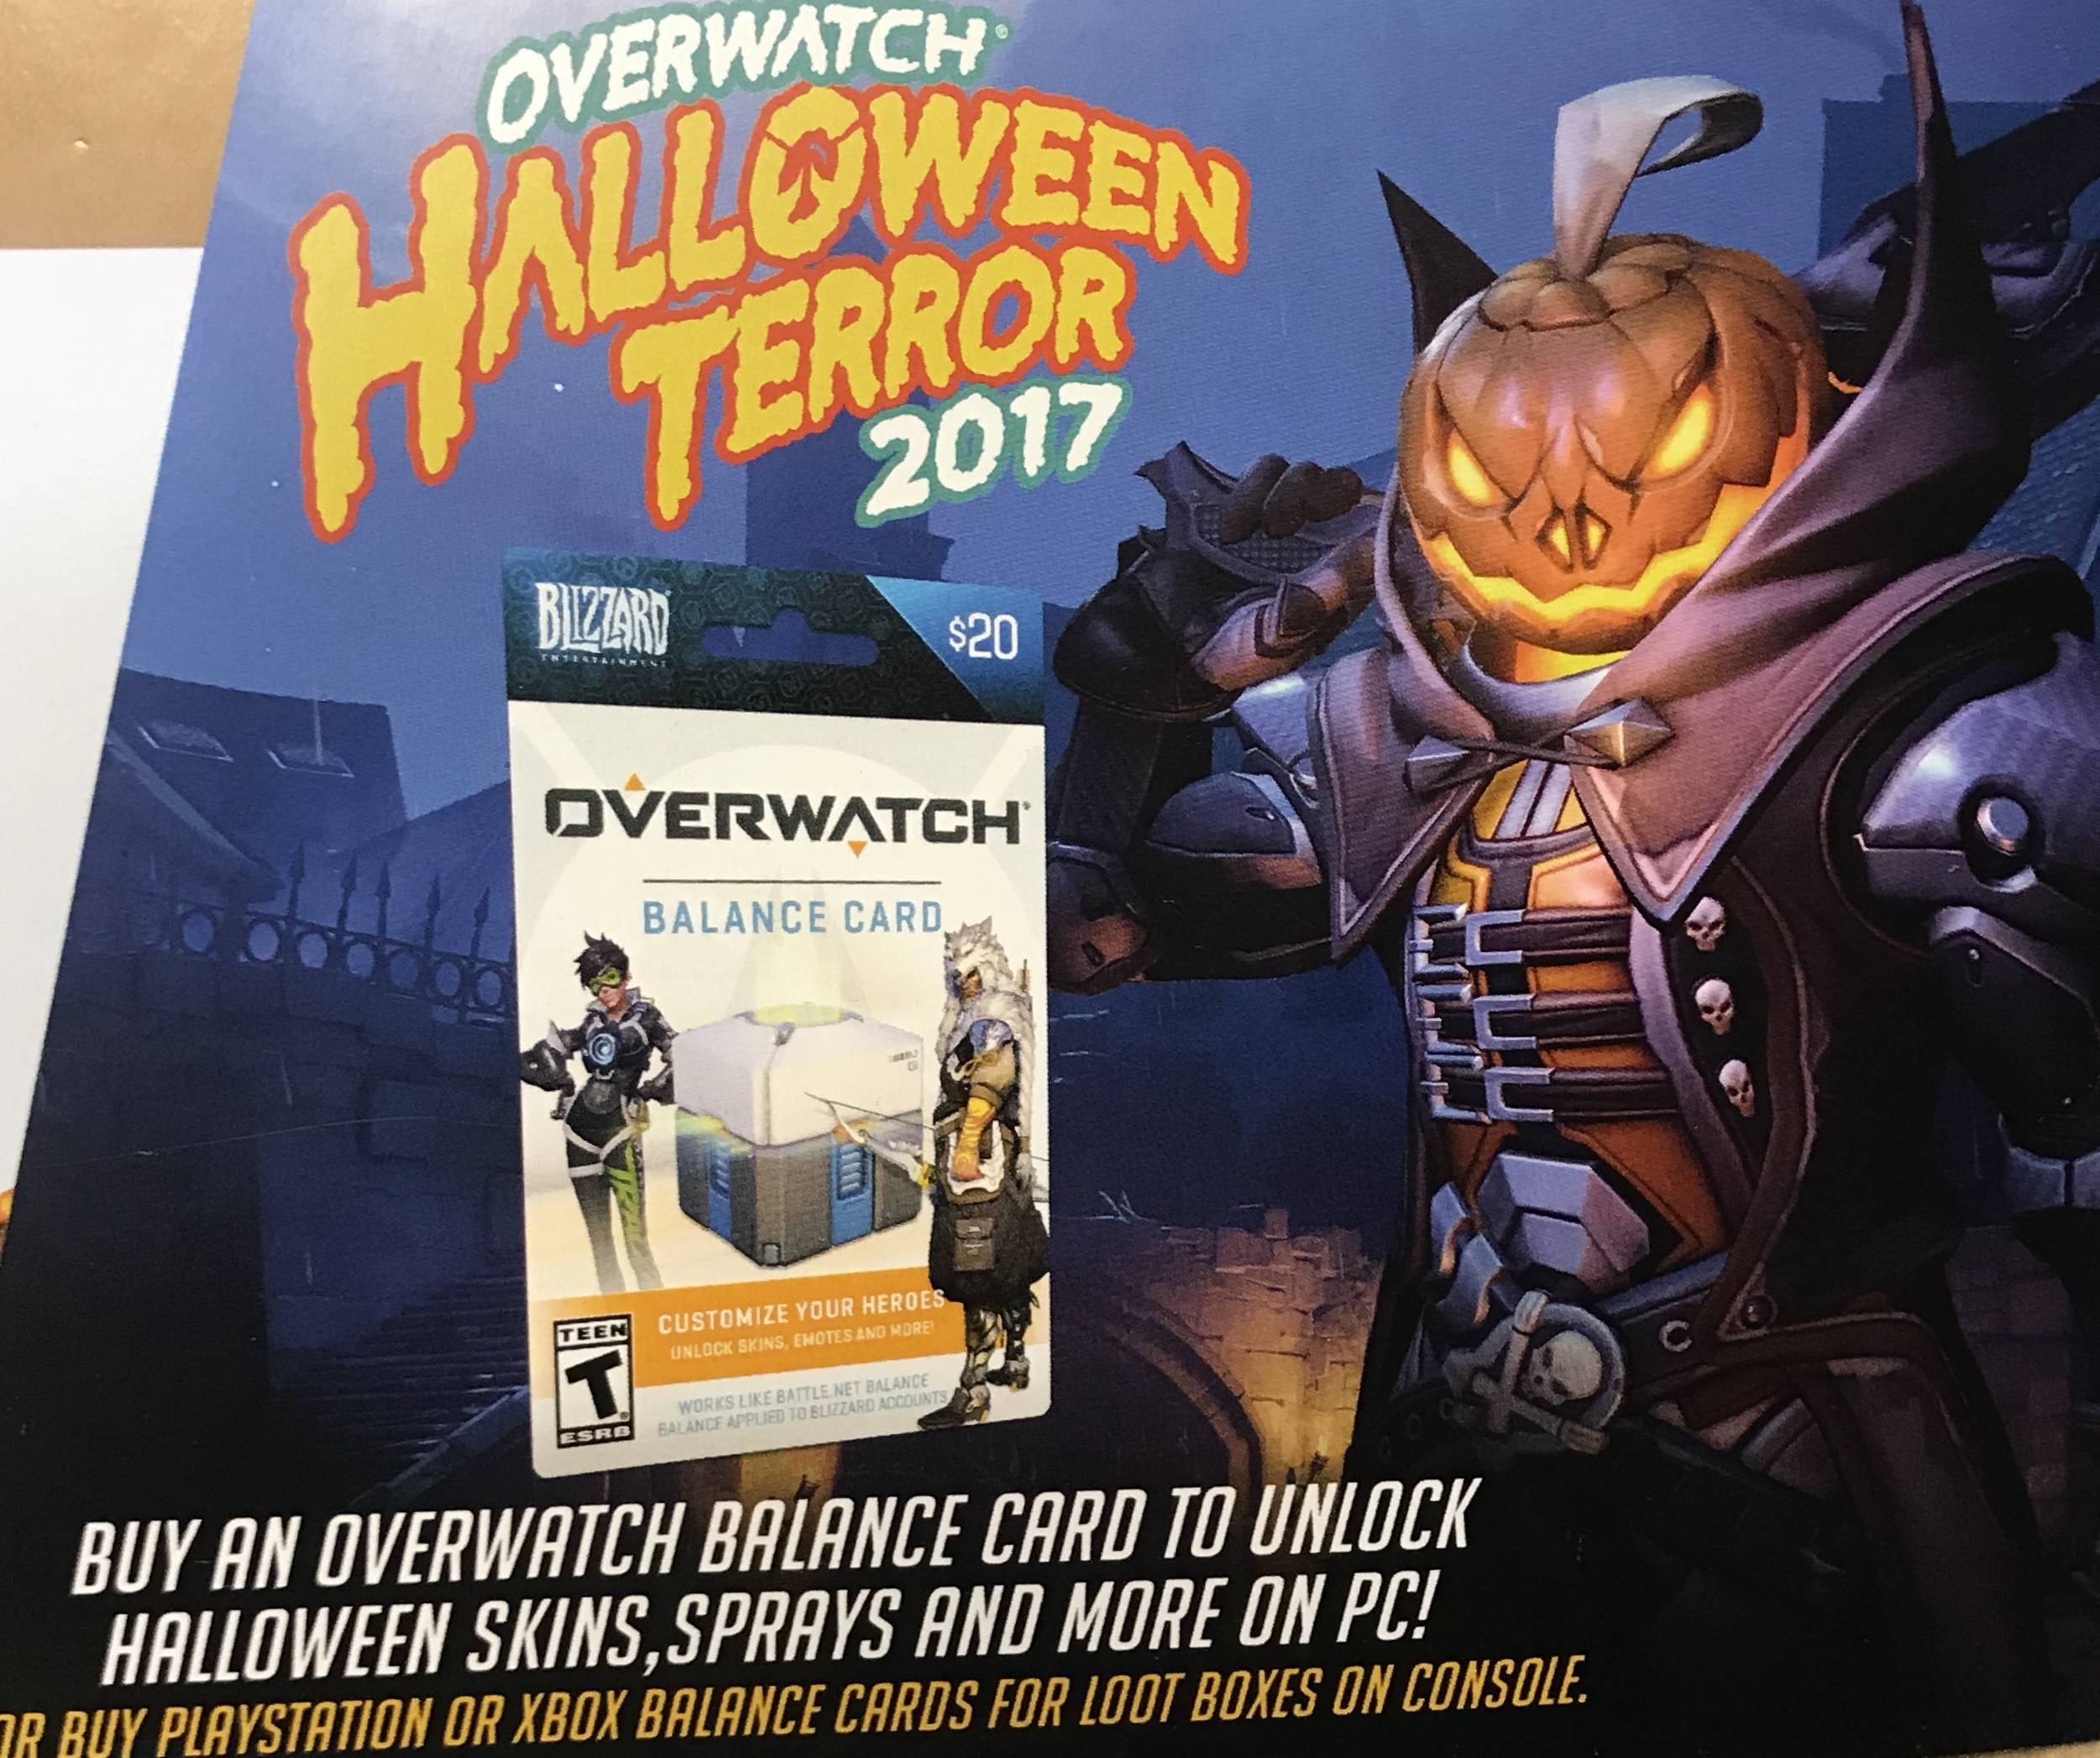 Overwatch Halloween 2020 Symbols Leak It looks like the start date for the return of Overwatch's